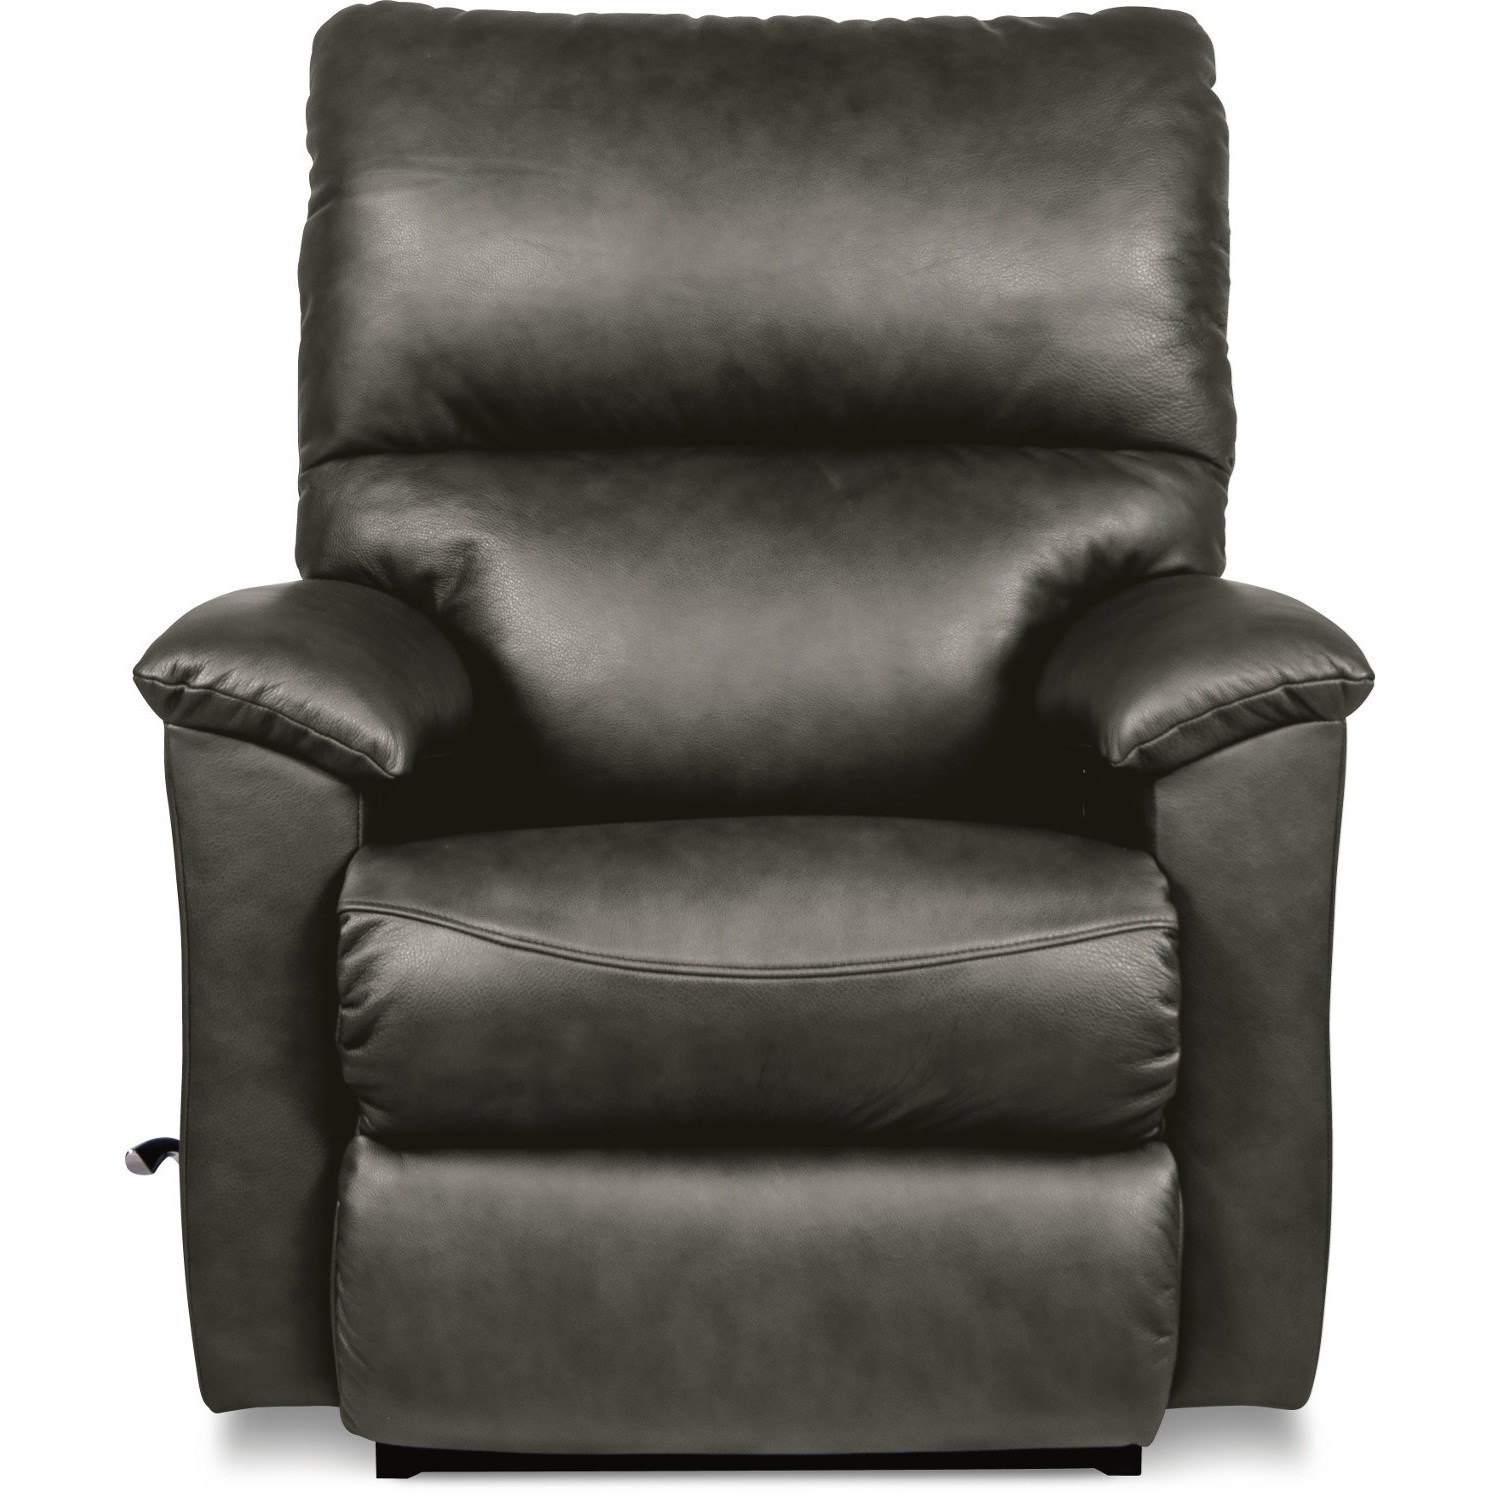 Casual Power-Recline-XRw Wall Saver Recliner